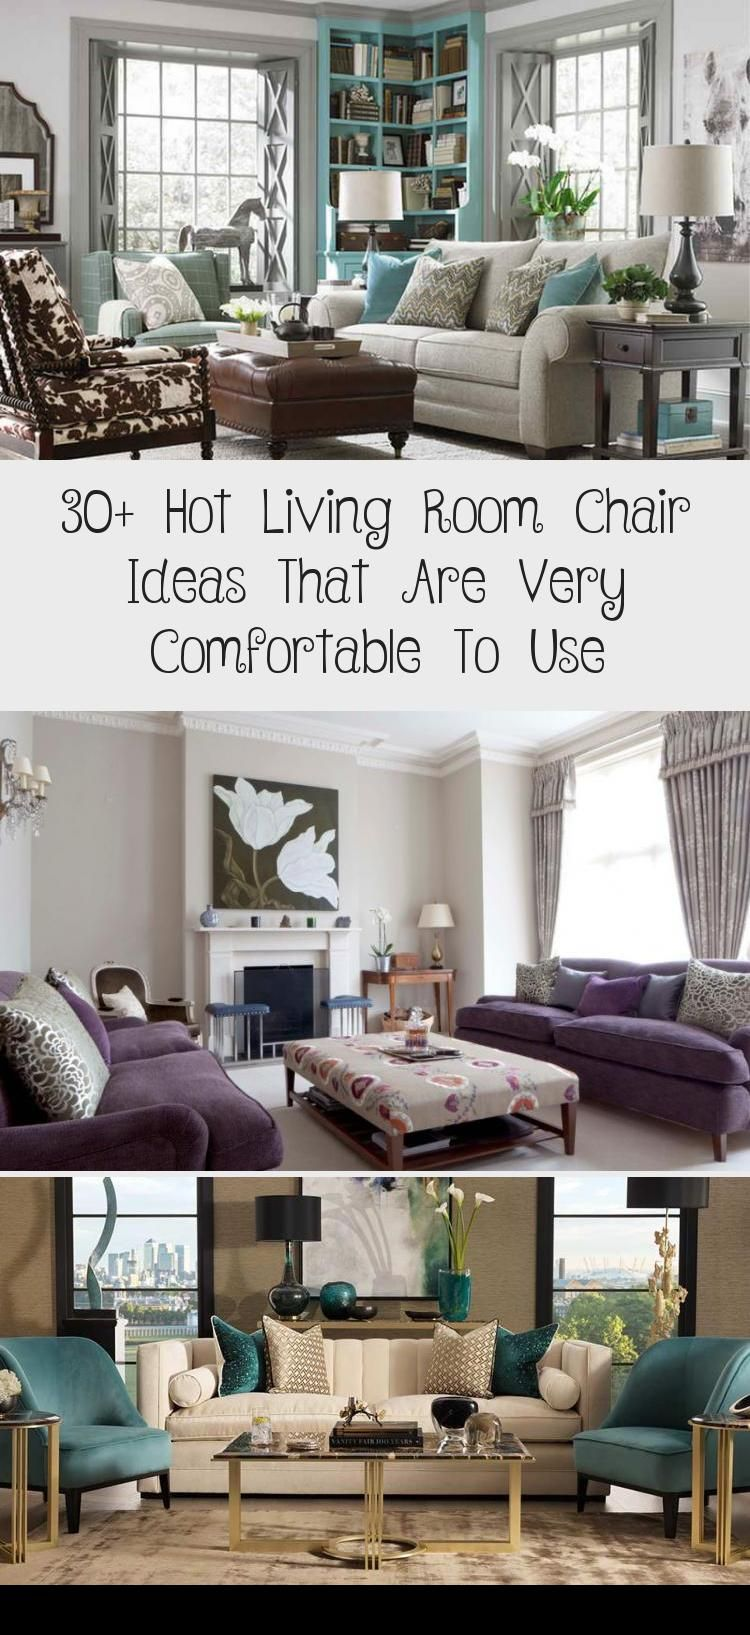 30 Hot Living Room Chair Ideas That Are Very Comfortable To Use In 2020 Retro Living Rooms Room Seating Fun Living Room